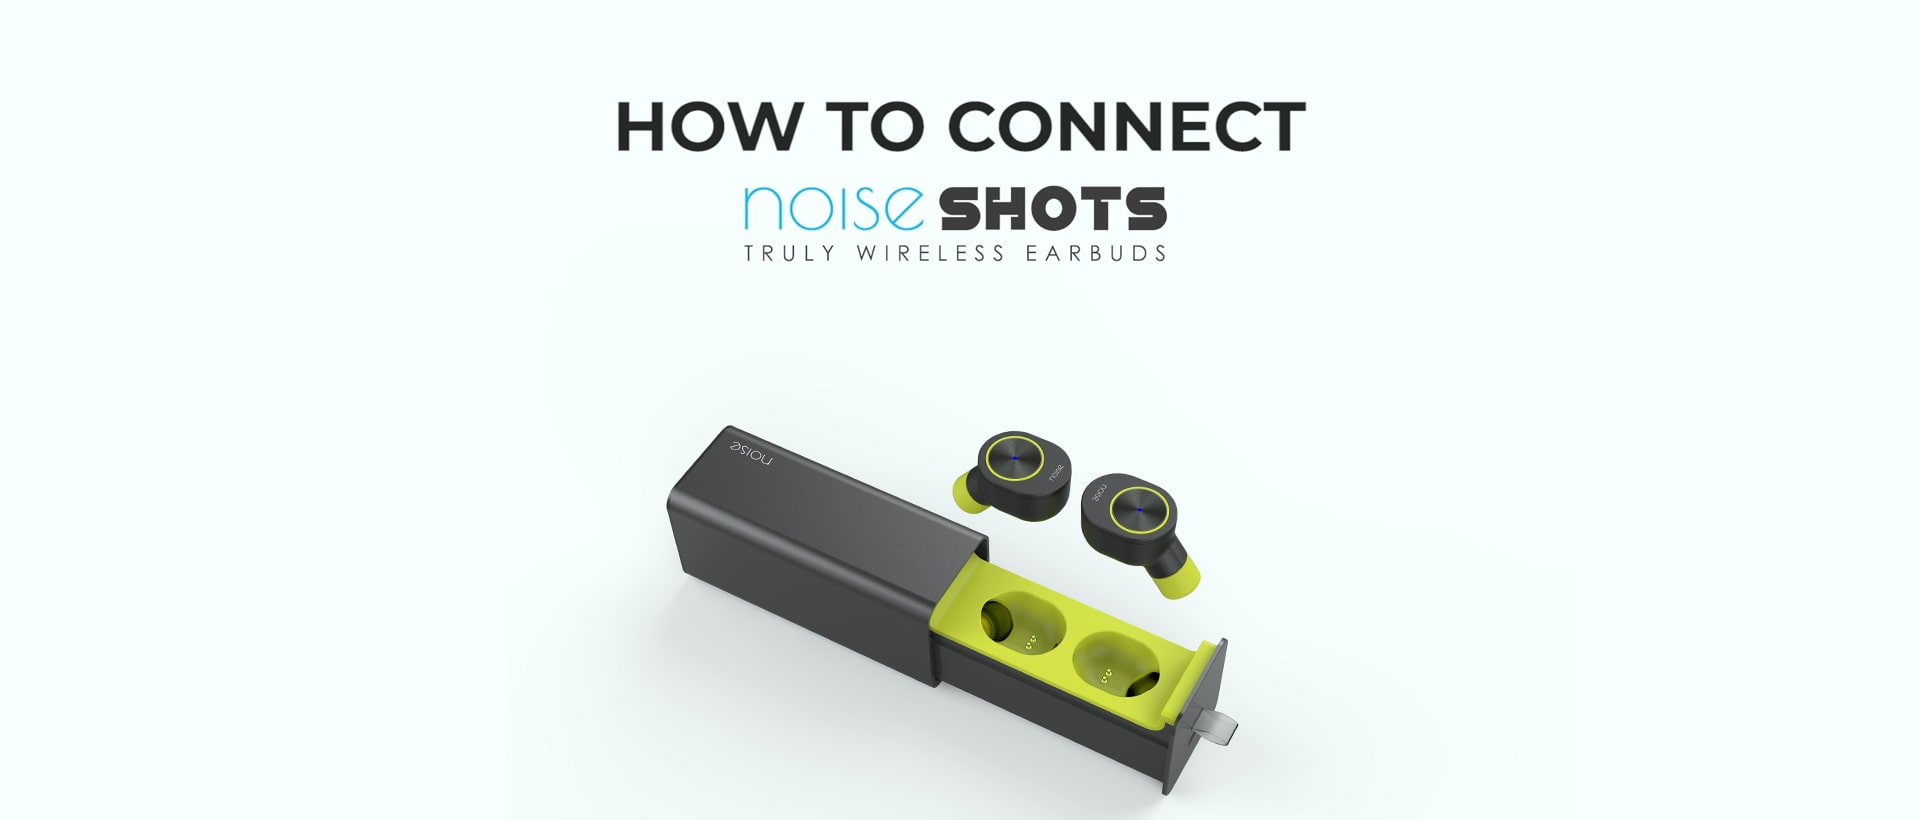 noise shots truly wireless thumbnail for how to connect video desktop